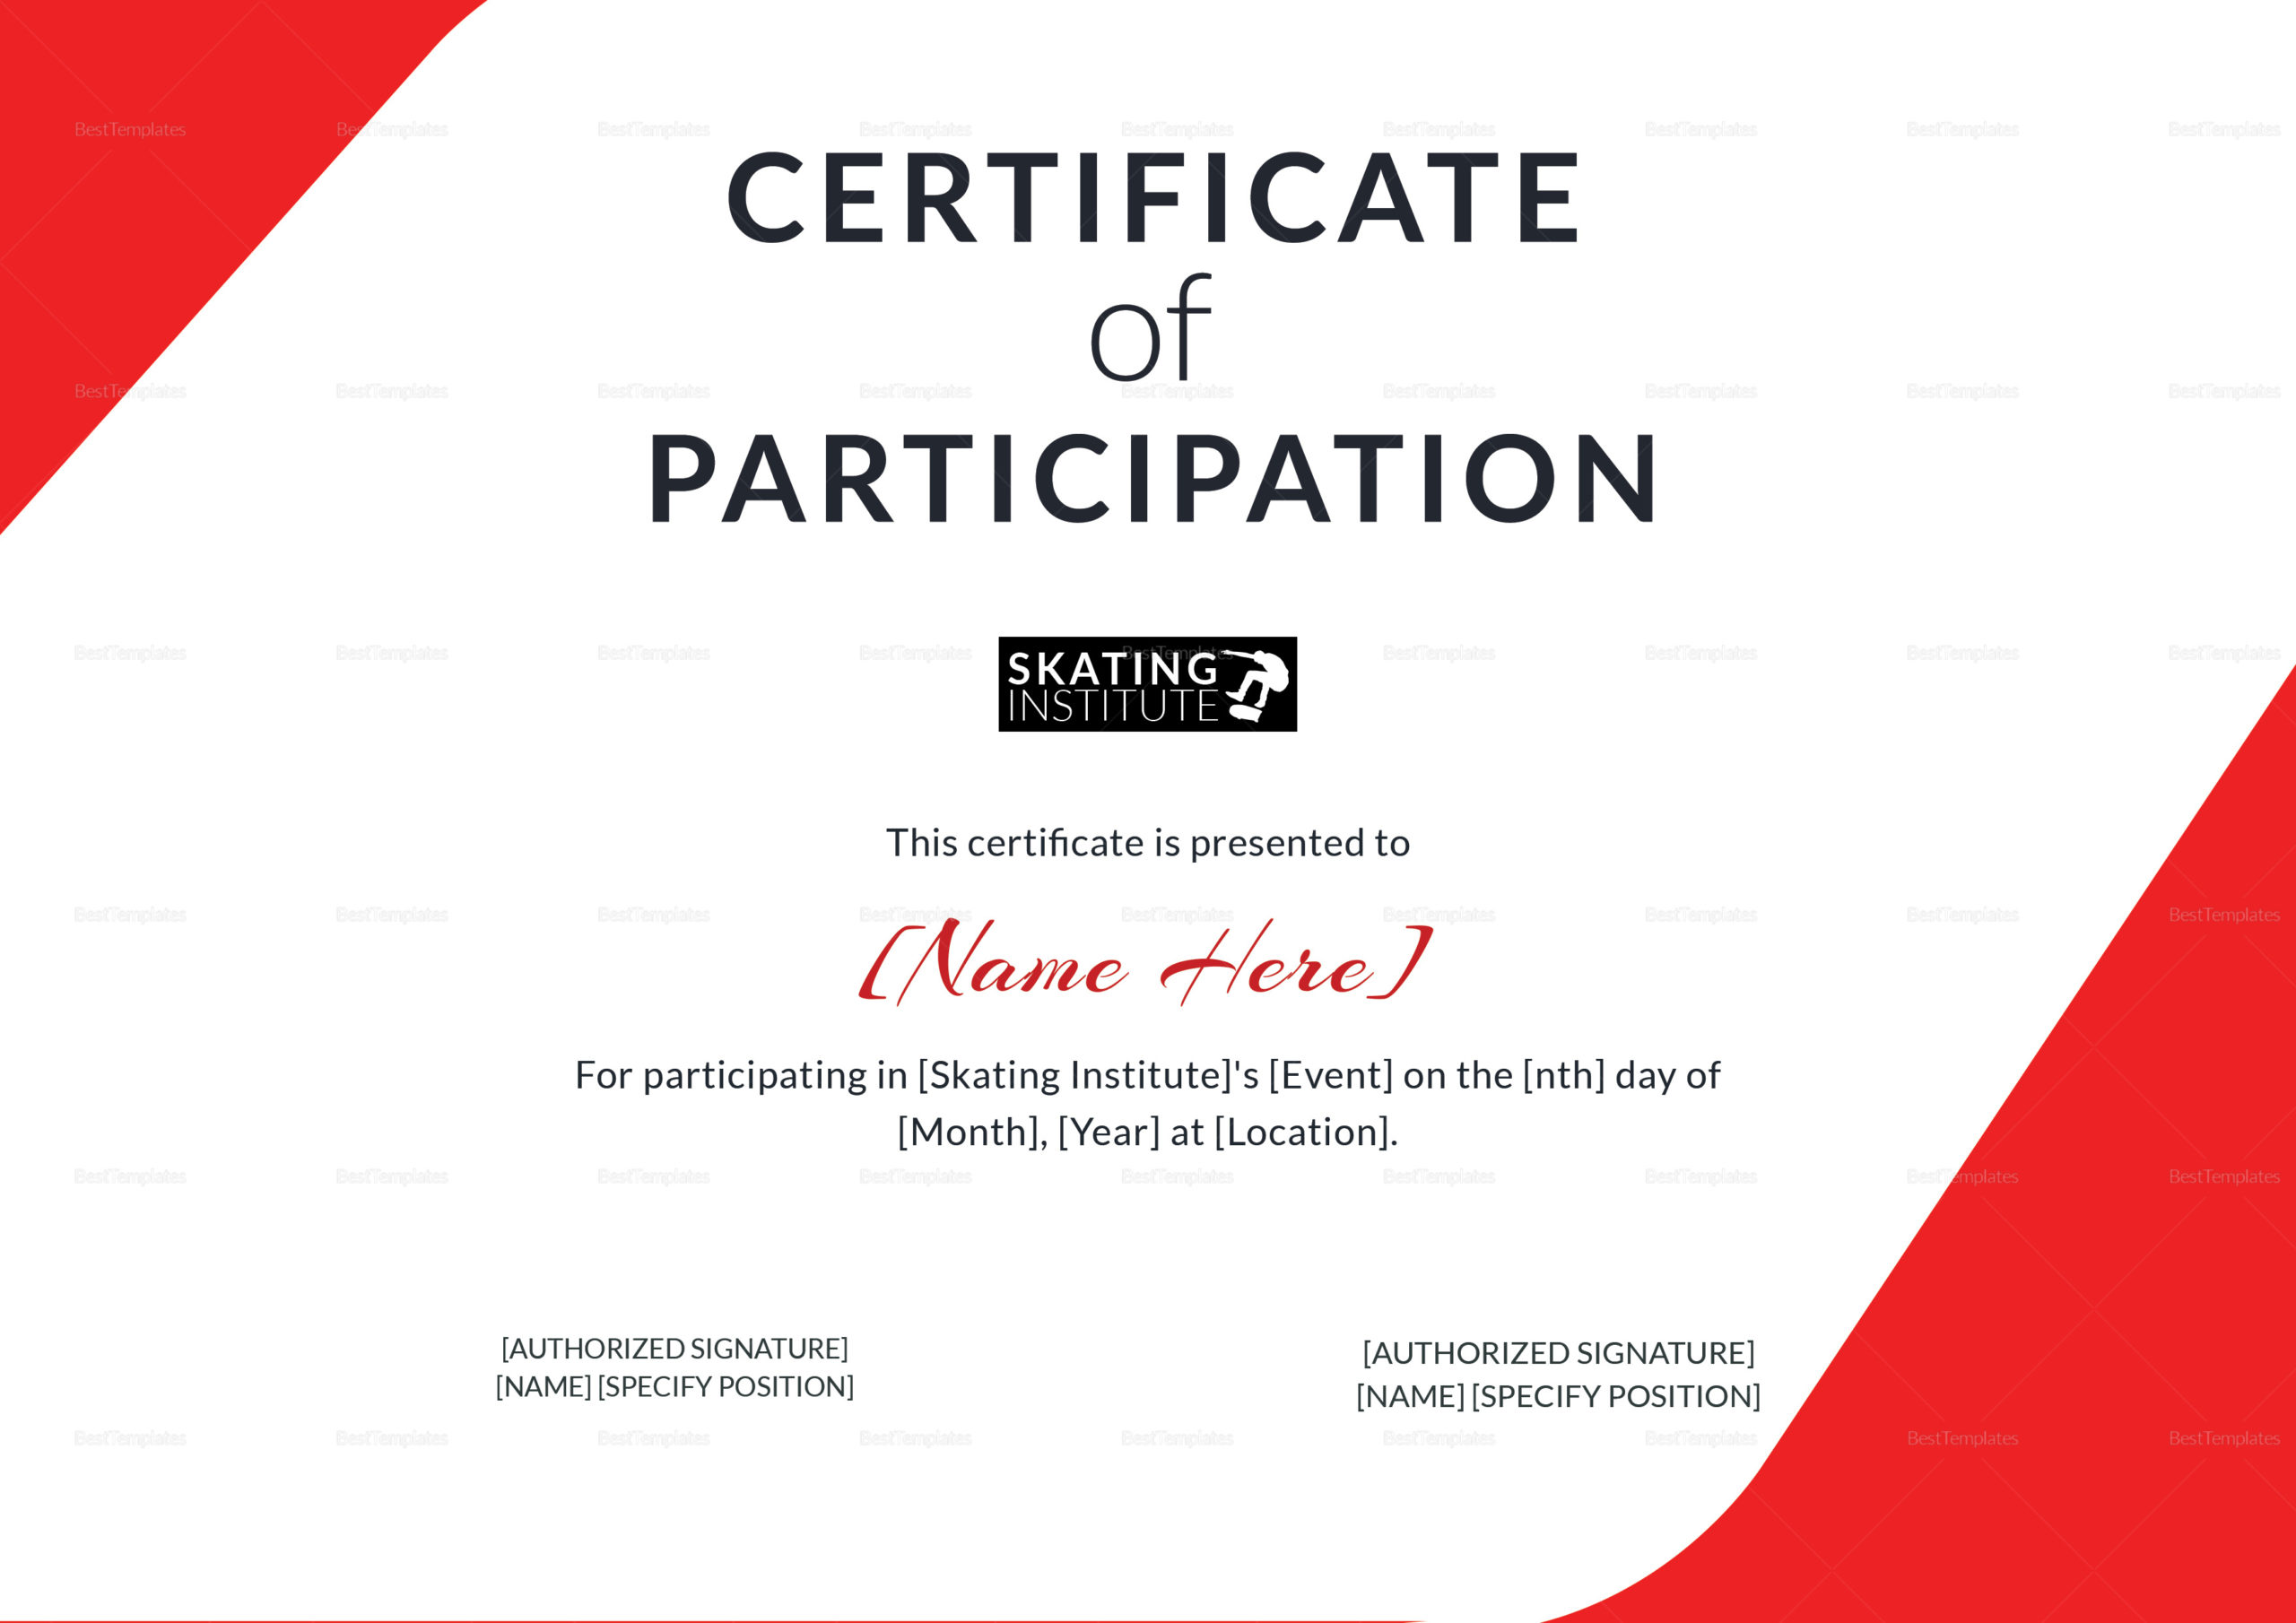 Certificate Of Participation For Skating Design Template Pertaining To Templates For Certificates Of Participation